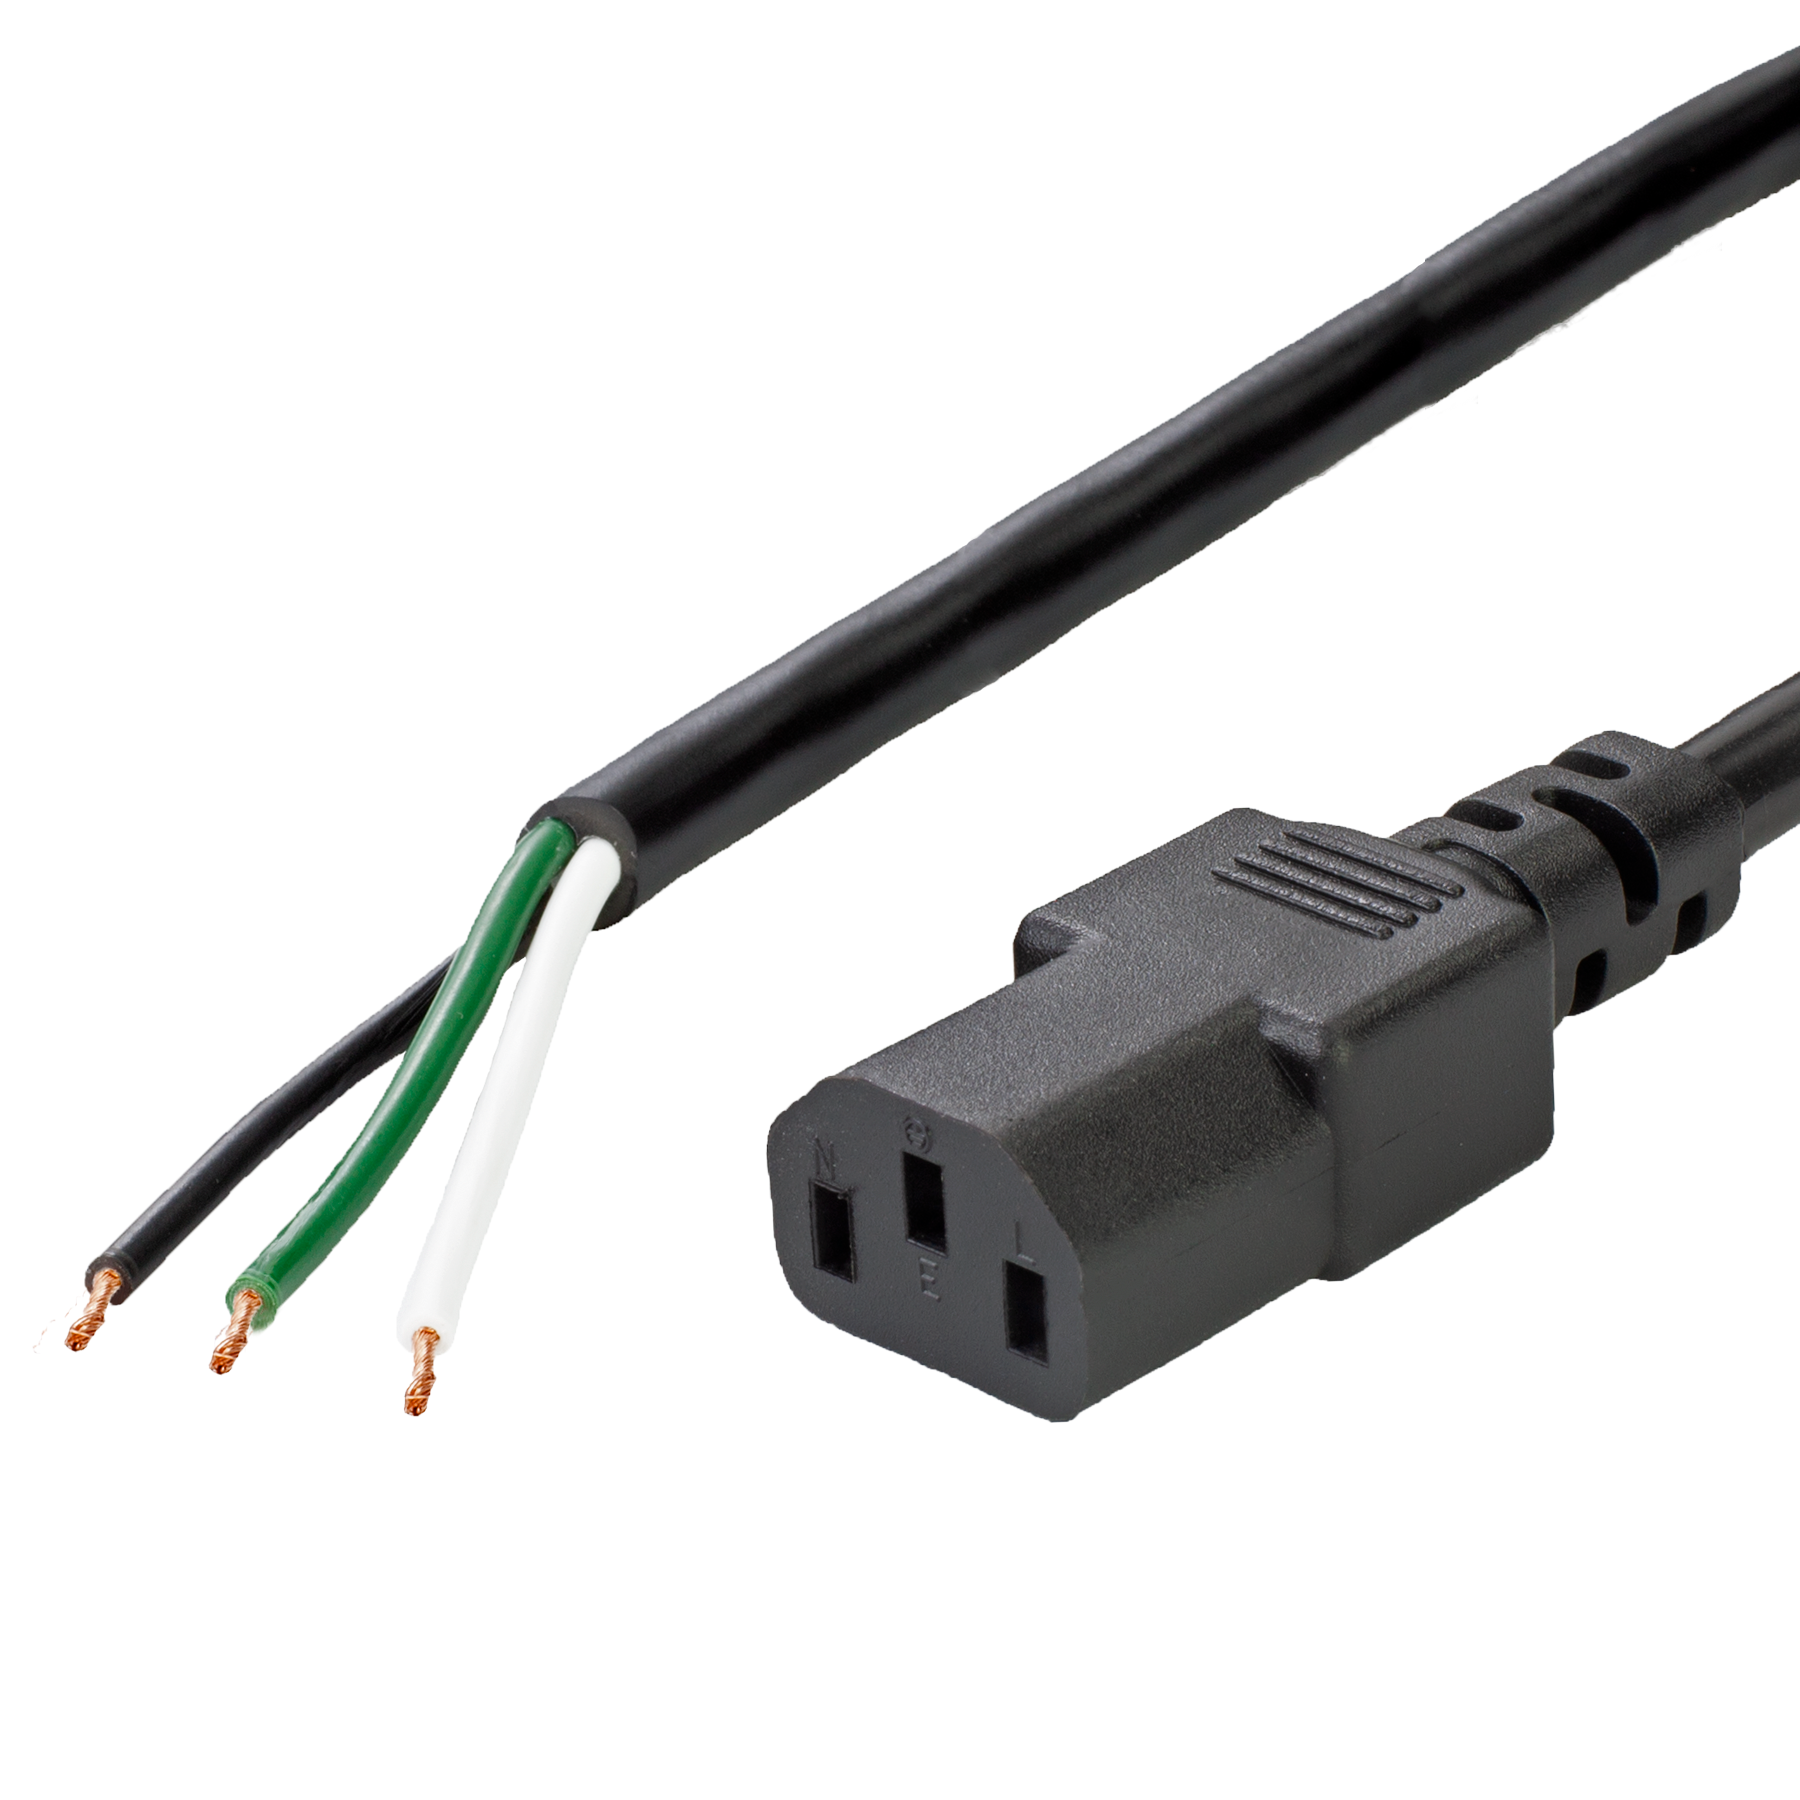 Black 10A OPEN to IEC 60320 C13 Power Cords